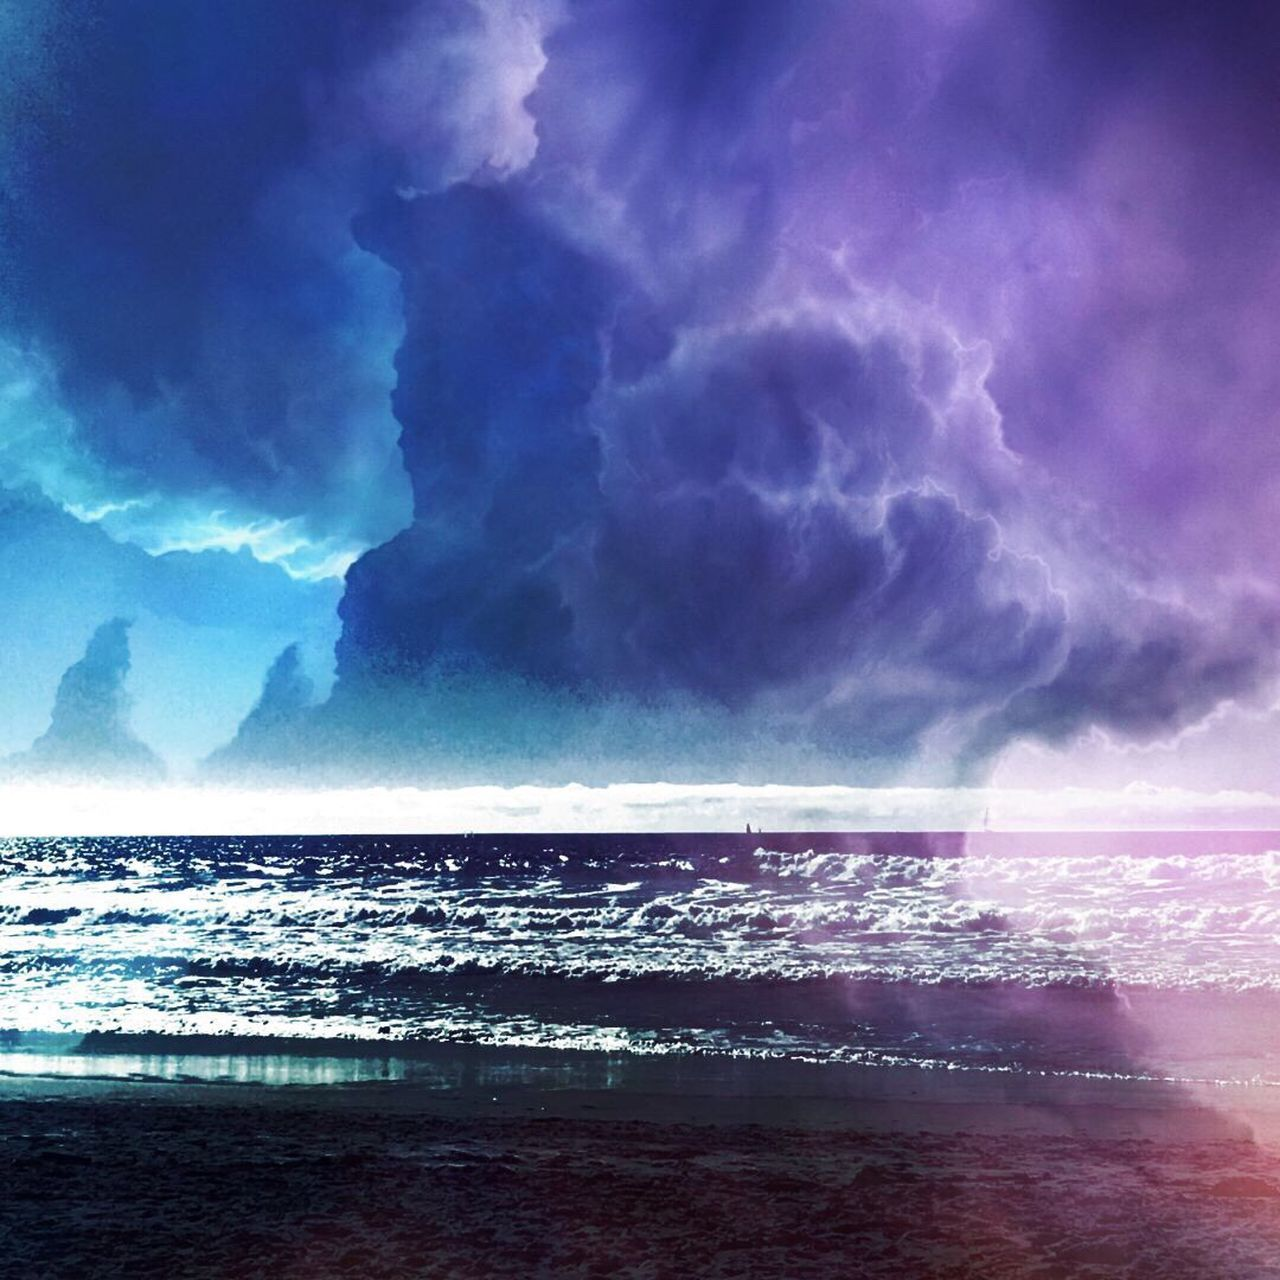 sea, sky, horizon over water, water, beauty in nature, scenics, nature, tranquil scene, tranquility, cloud - sky, no people, outdoors, day, beach, power in nature, wave